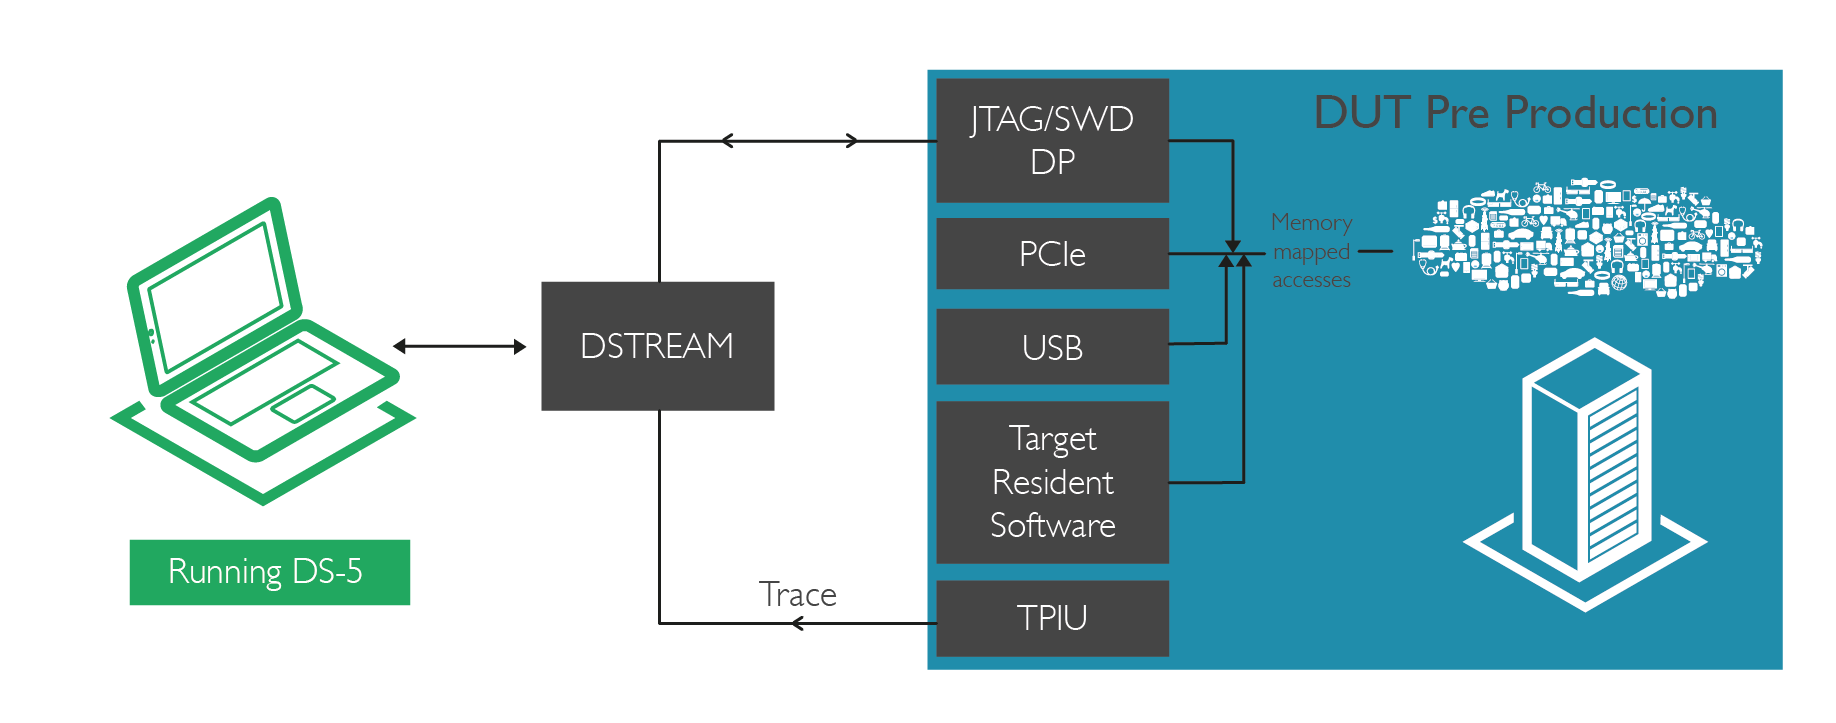 EW17 DEMO: The future of debug - Embedded blog - Embedded